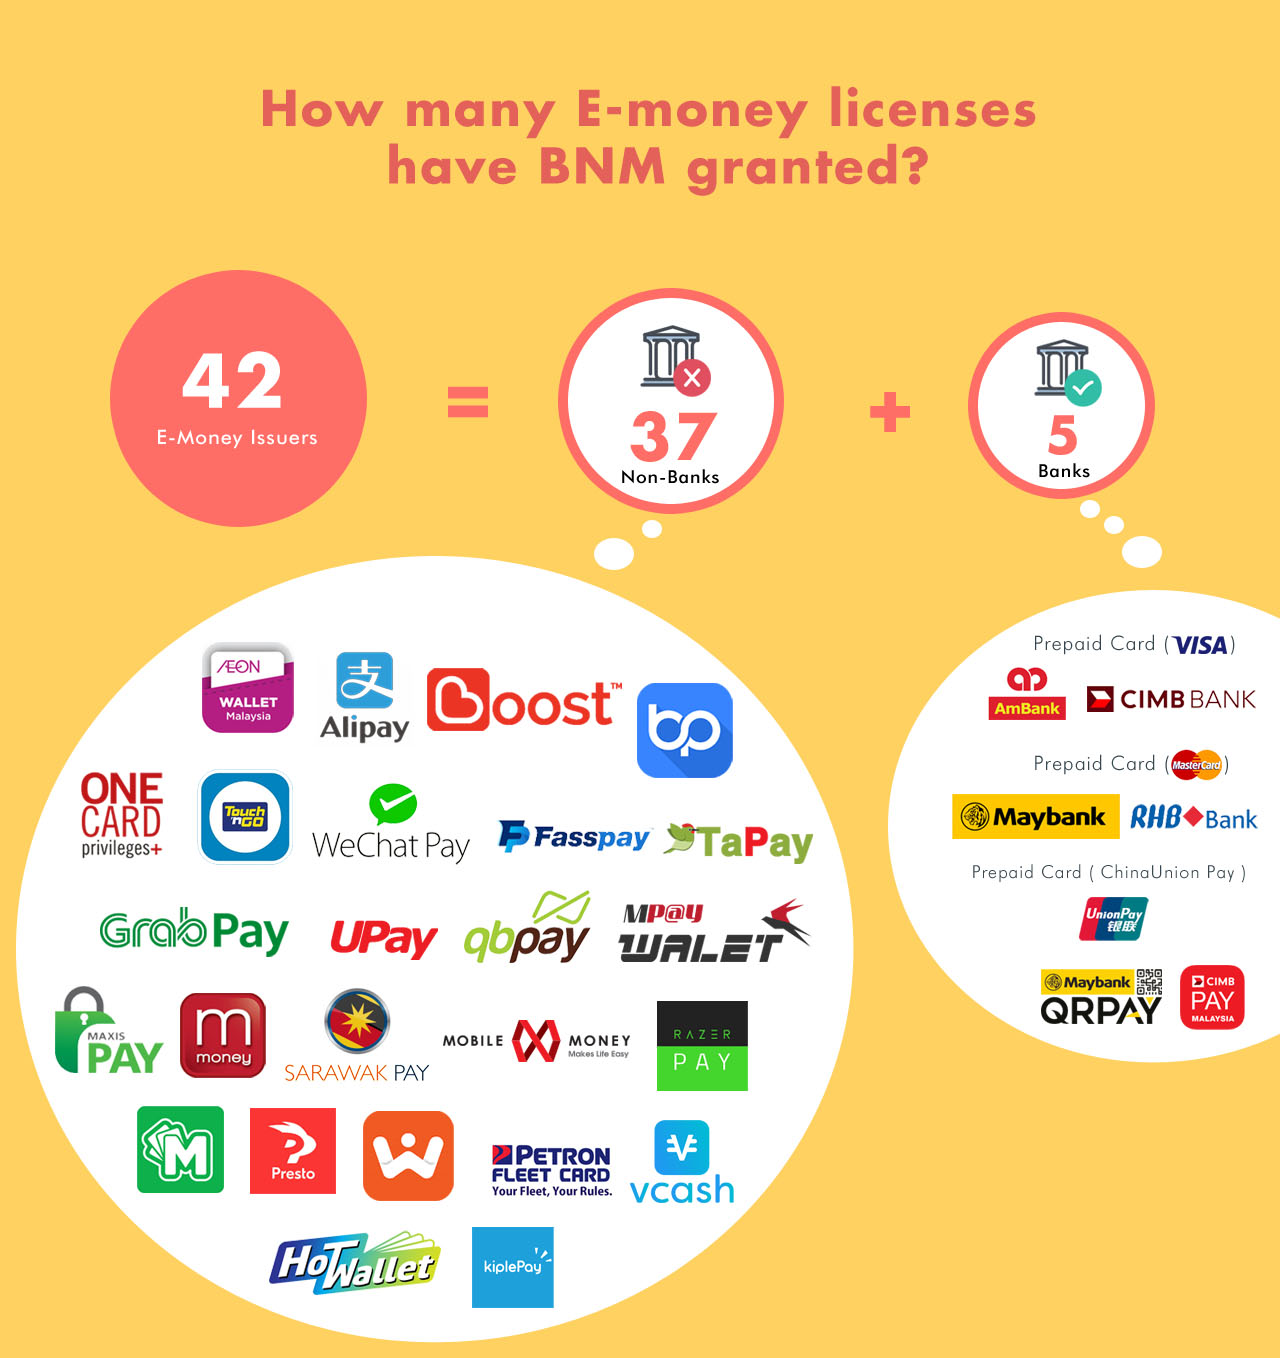 How many e-money licenses have BNM granted?